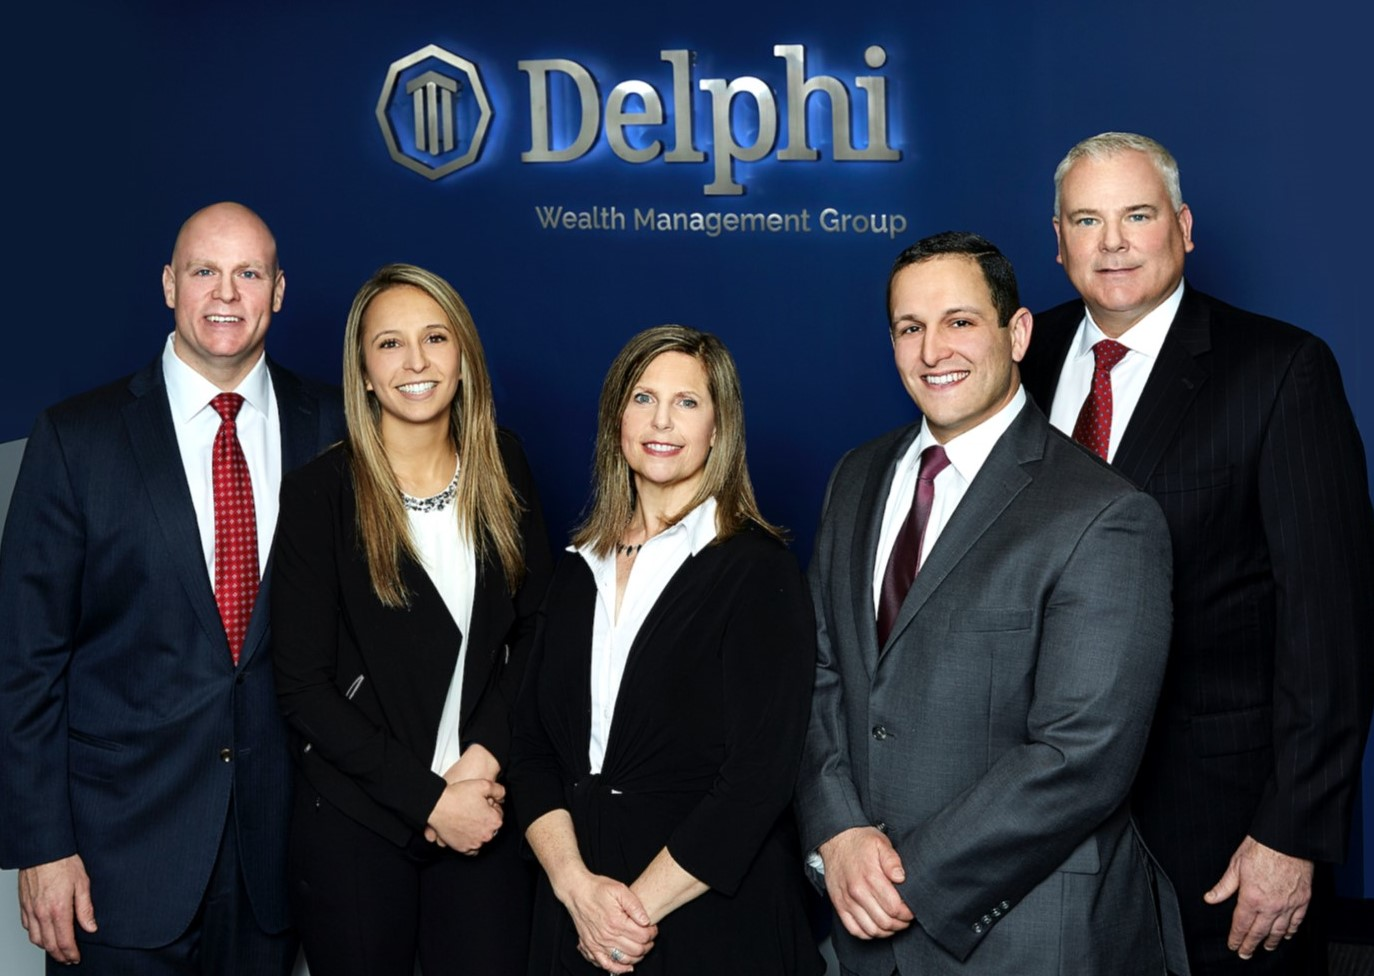 Delphi Wealth Management in West Chester Marks Milestone with Ribbon-Cutting Ceremony